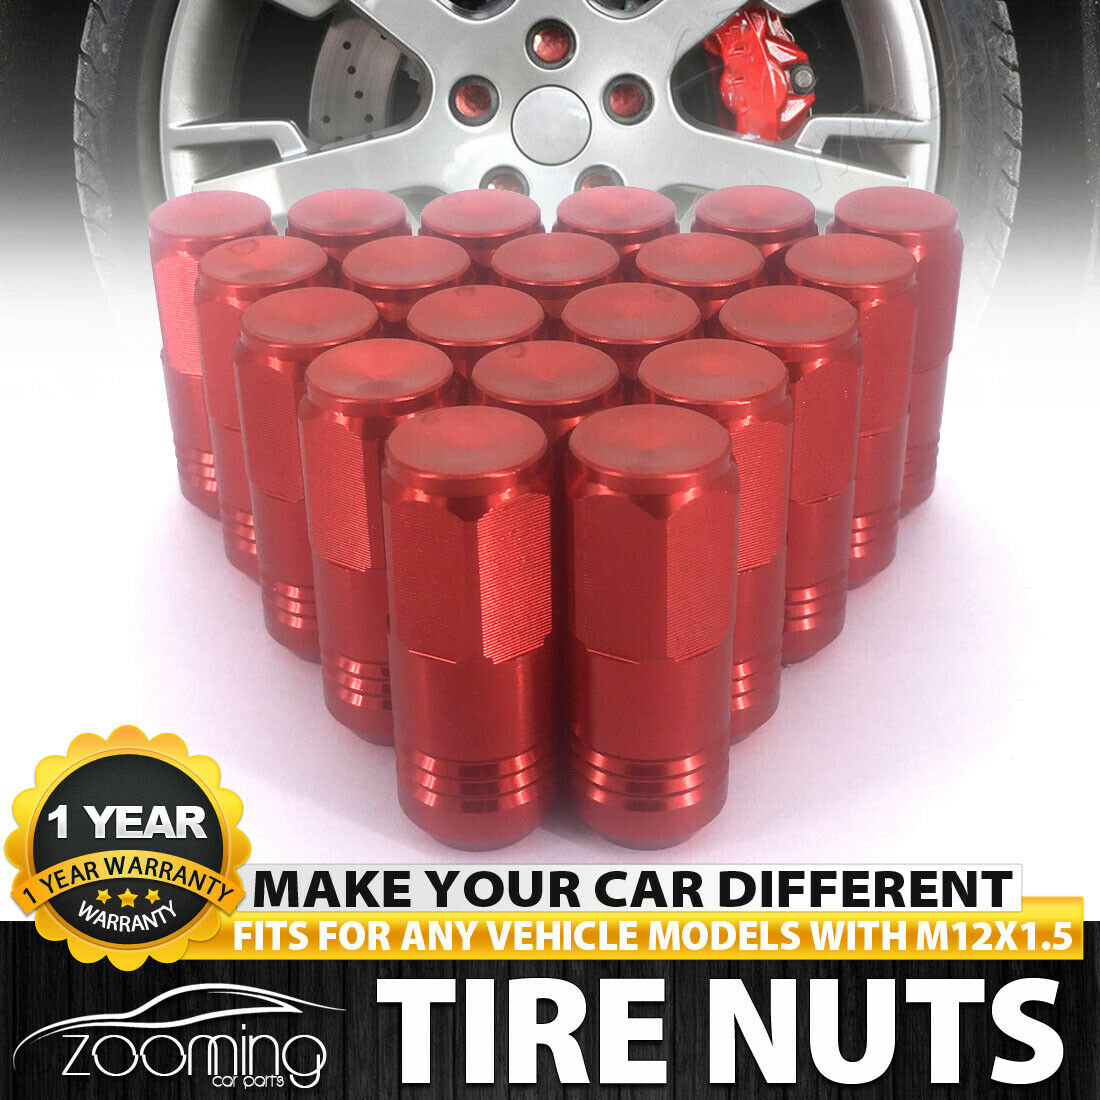 24 PC RED LUG EXTENDED RACING LUG NUTS FOR TIRES//WHEELS//RIMS 50MM 12X1.5 A